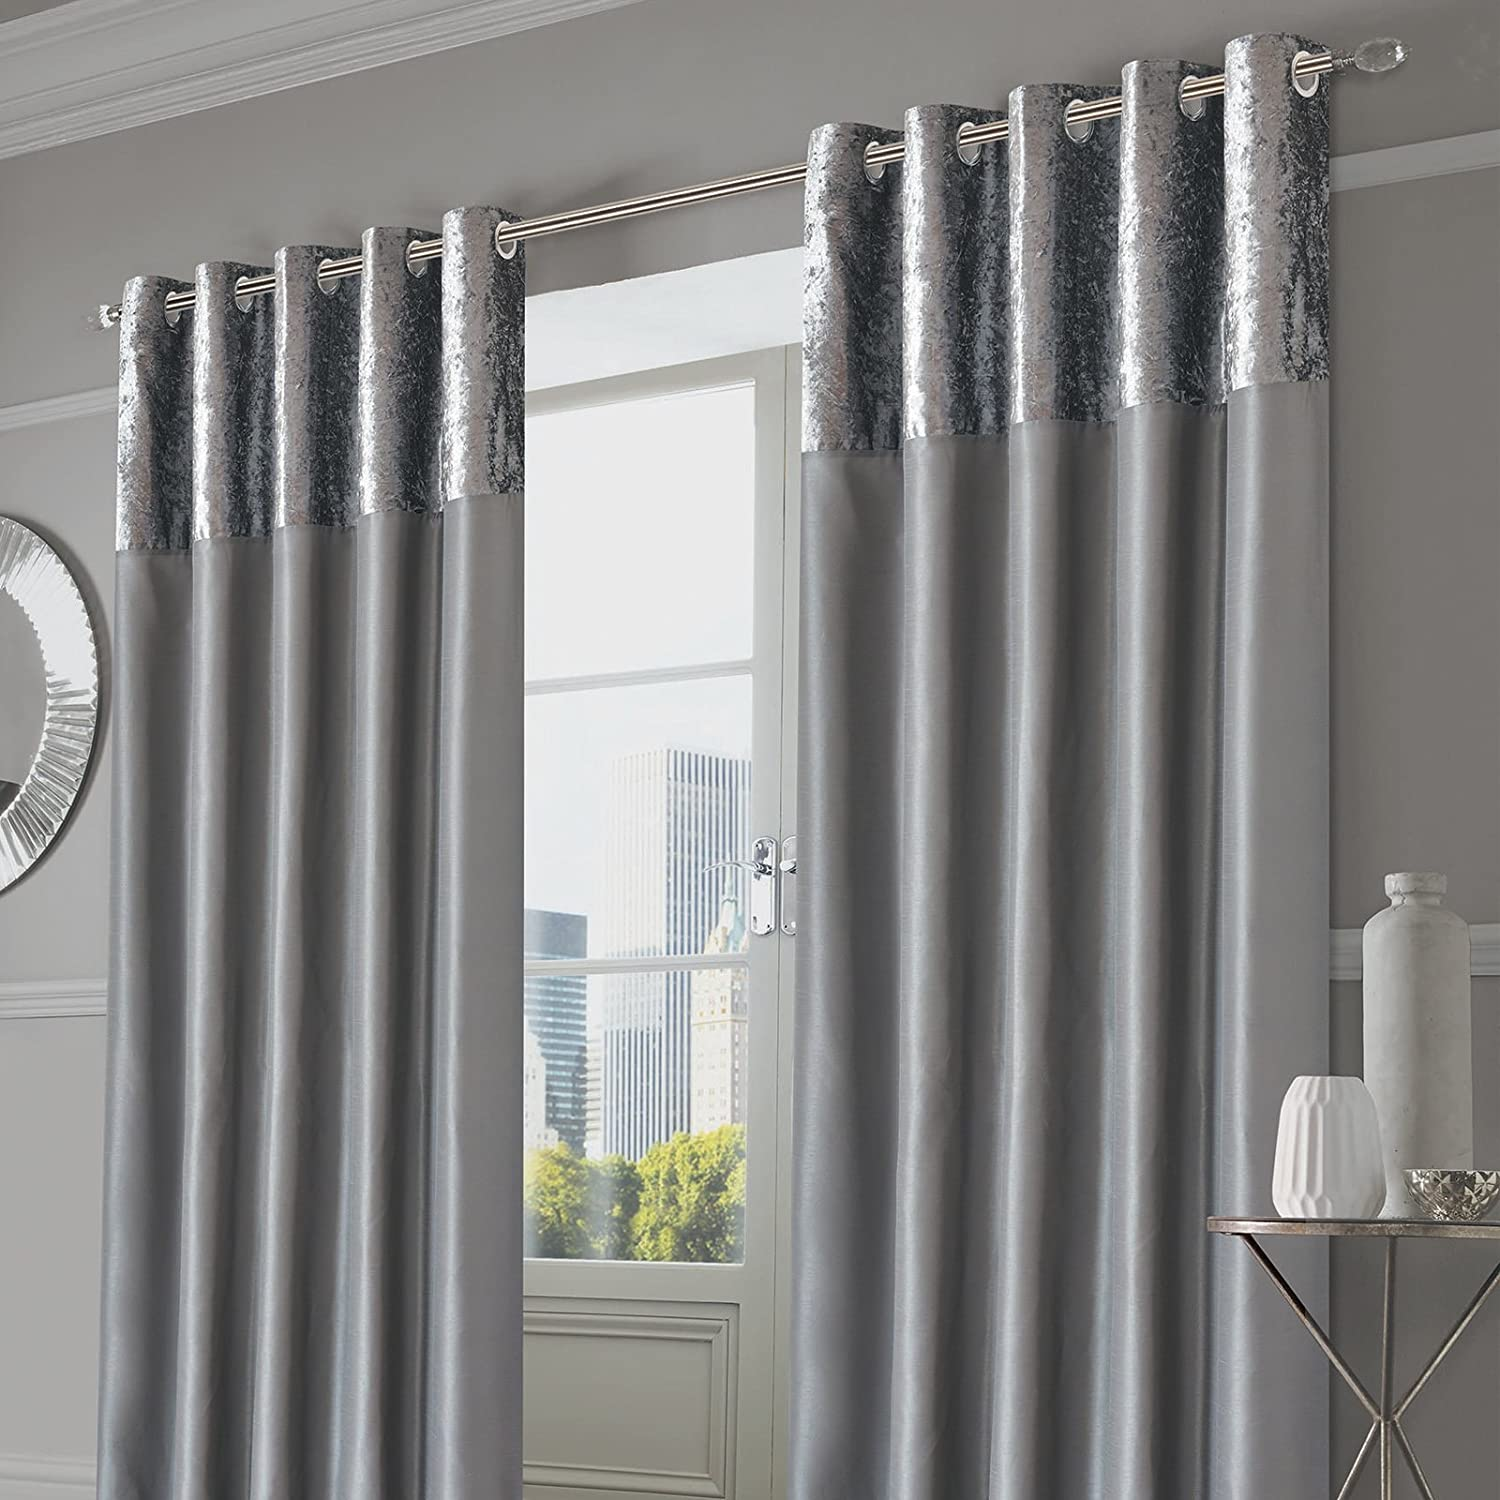 """Sienna PAIR of Crushed Velvet Band Curtains Fully Lined Eyelet Ring Top Faux Silk Window Treatment Panels - Silver Grey, Width 66"""" x Drop 54"""" 66"""" wide x 54"""" drop Manhattan Silver Grey"""